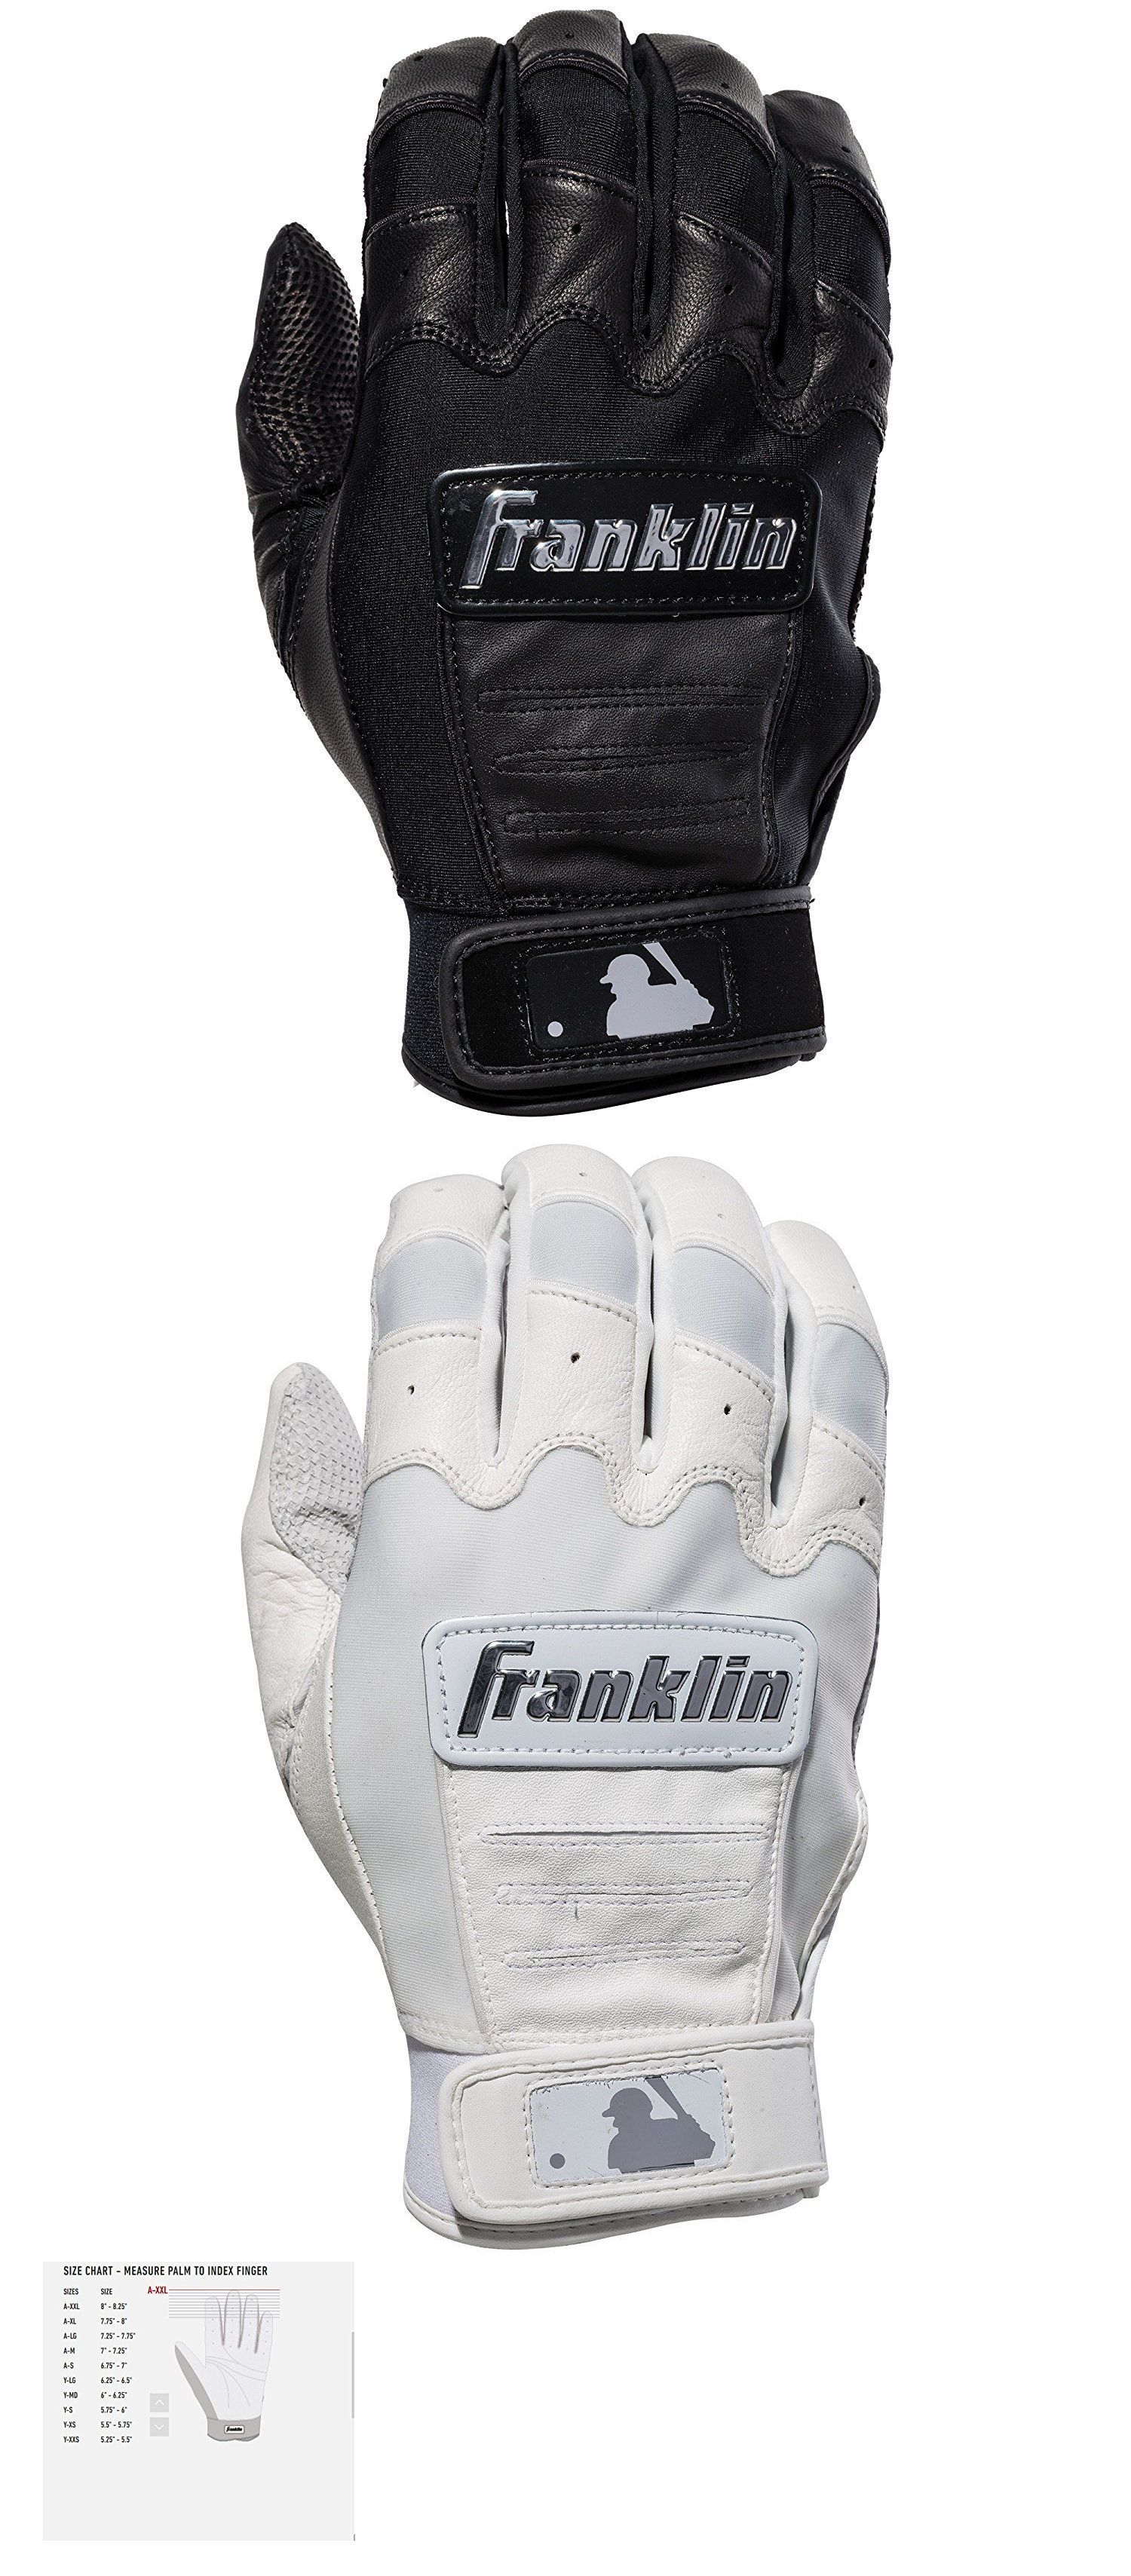 Batting Gloves 181351  Franklin Sports Cfx Pro Full Color Chrome Series Batting  Gloves - Two Colors! -  BUY IT NOW ONLY   29.99 on  eBay  batting  gloves  ... 9d0365799a96